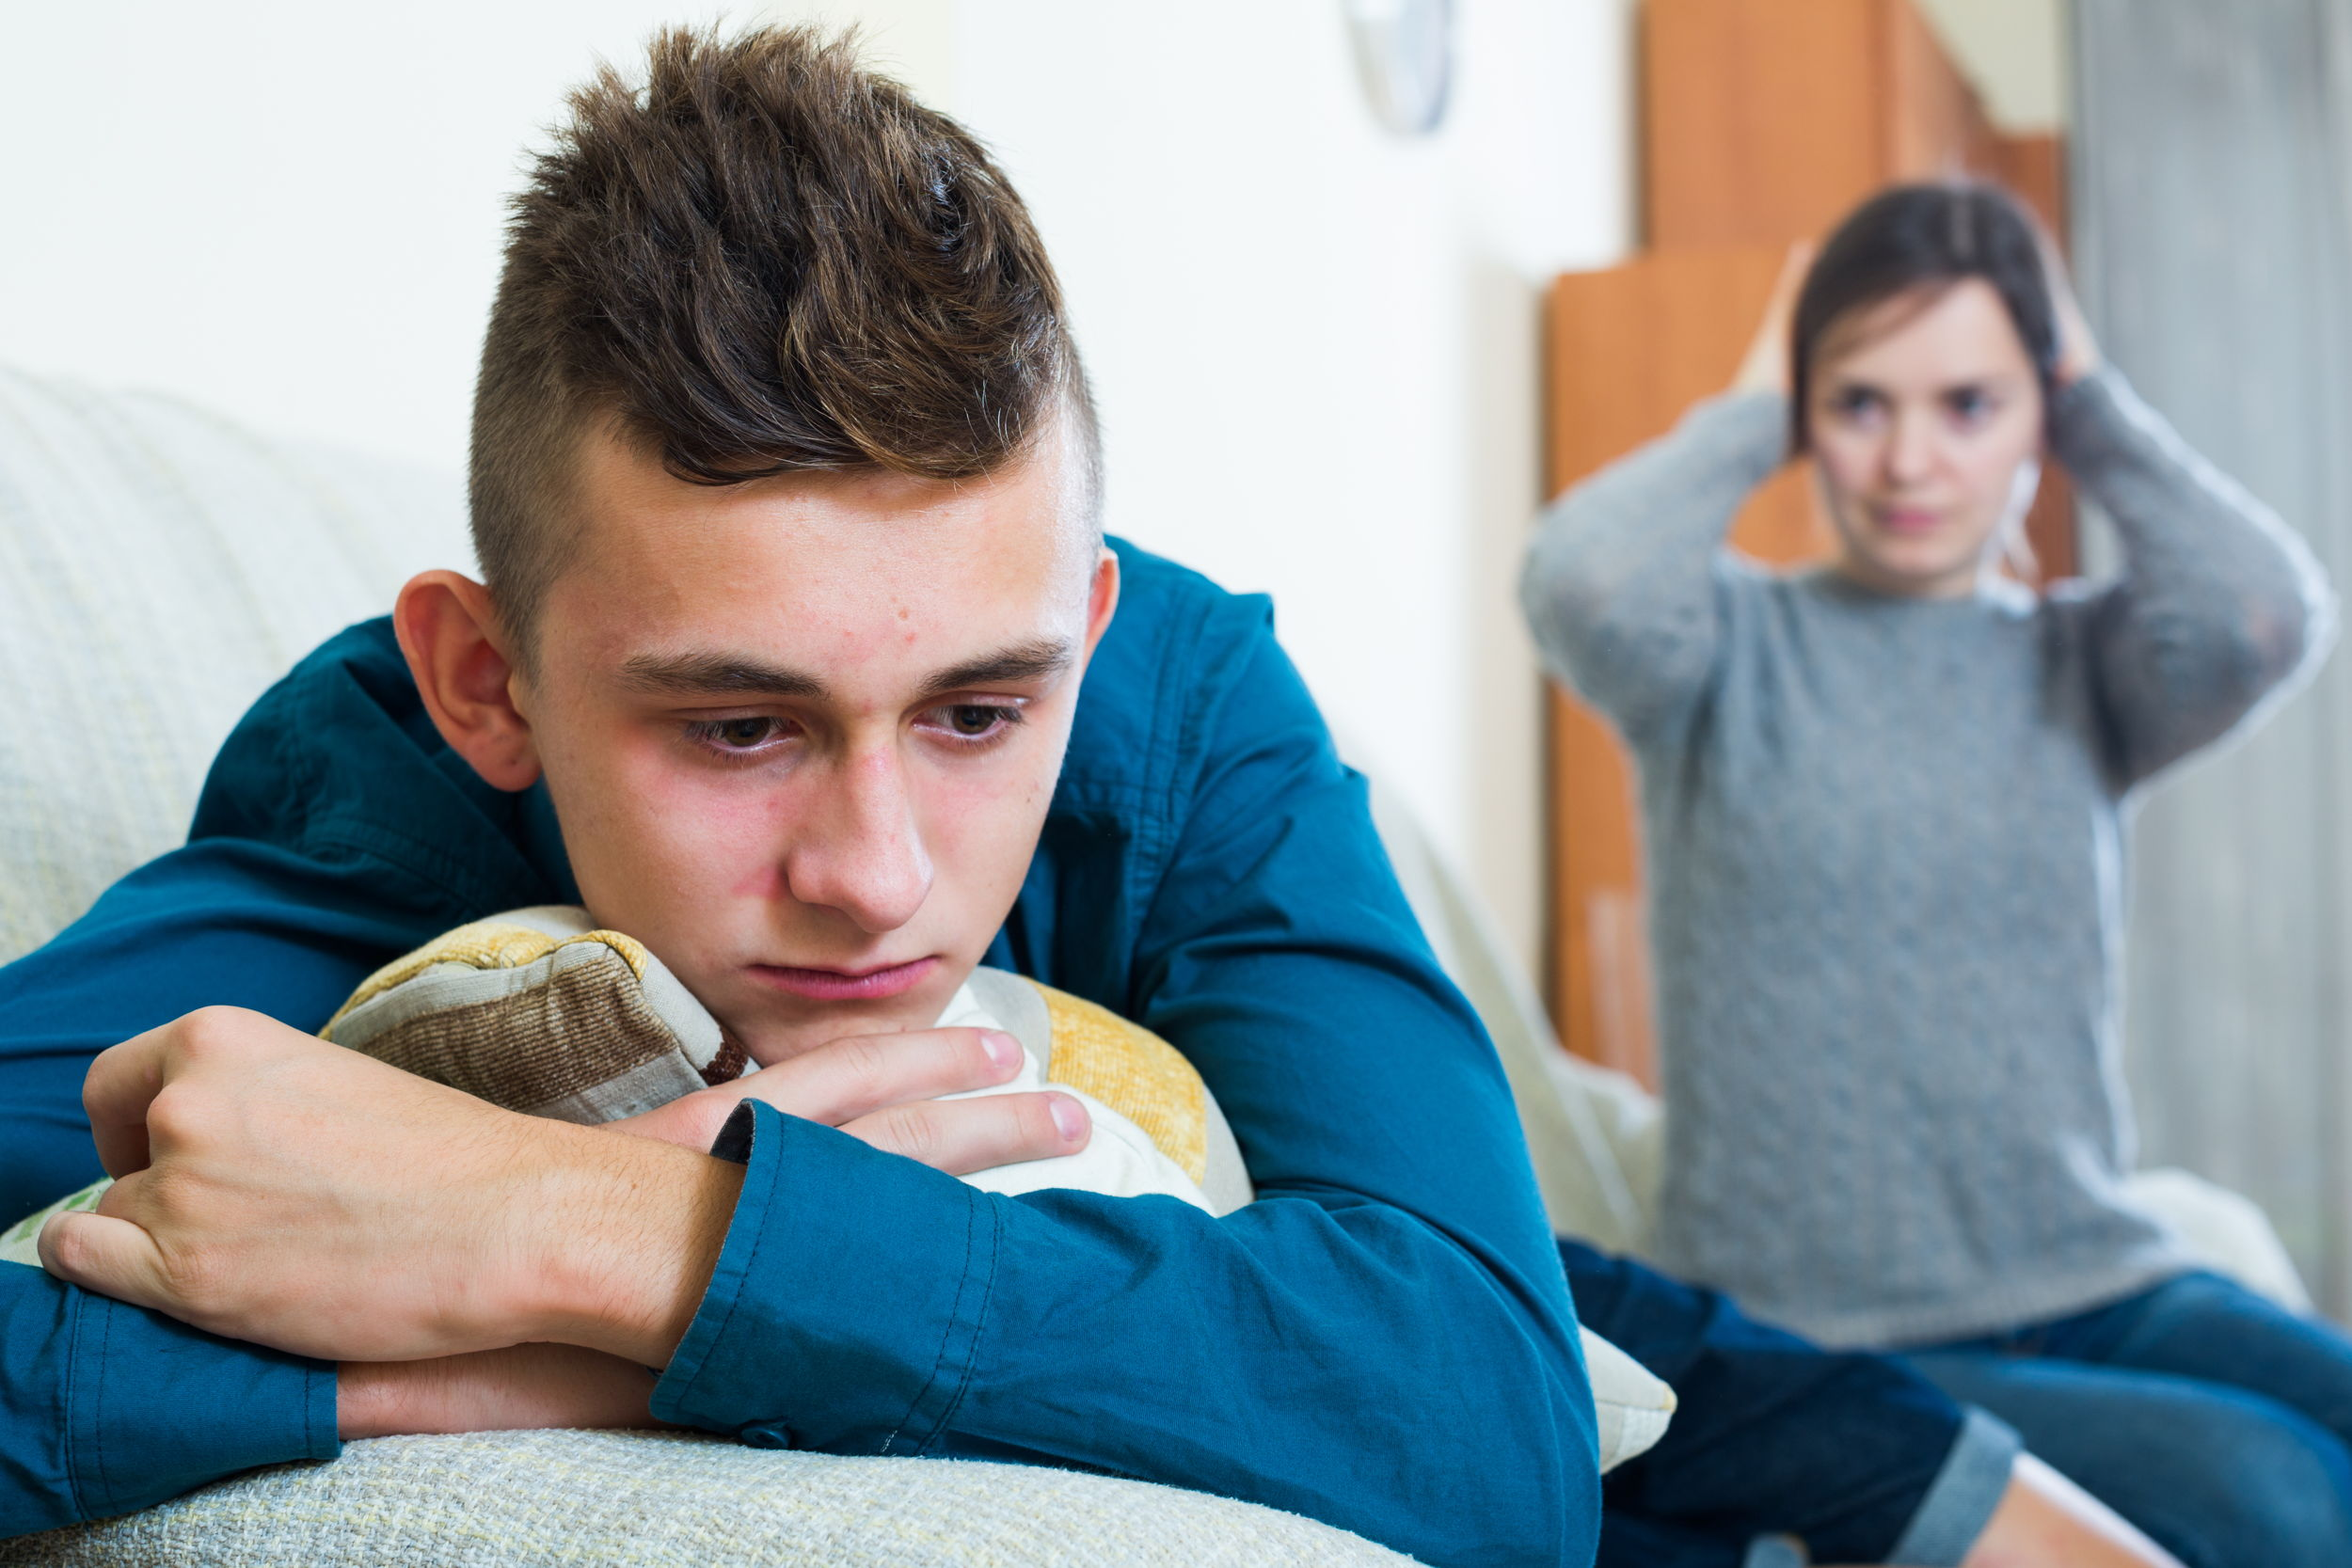 teen stress l how a teenager can relieve stress l teenage Stress l adolescent stress l causes of teenage stress